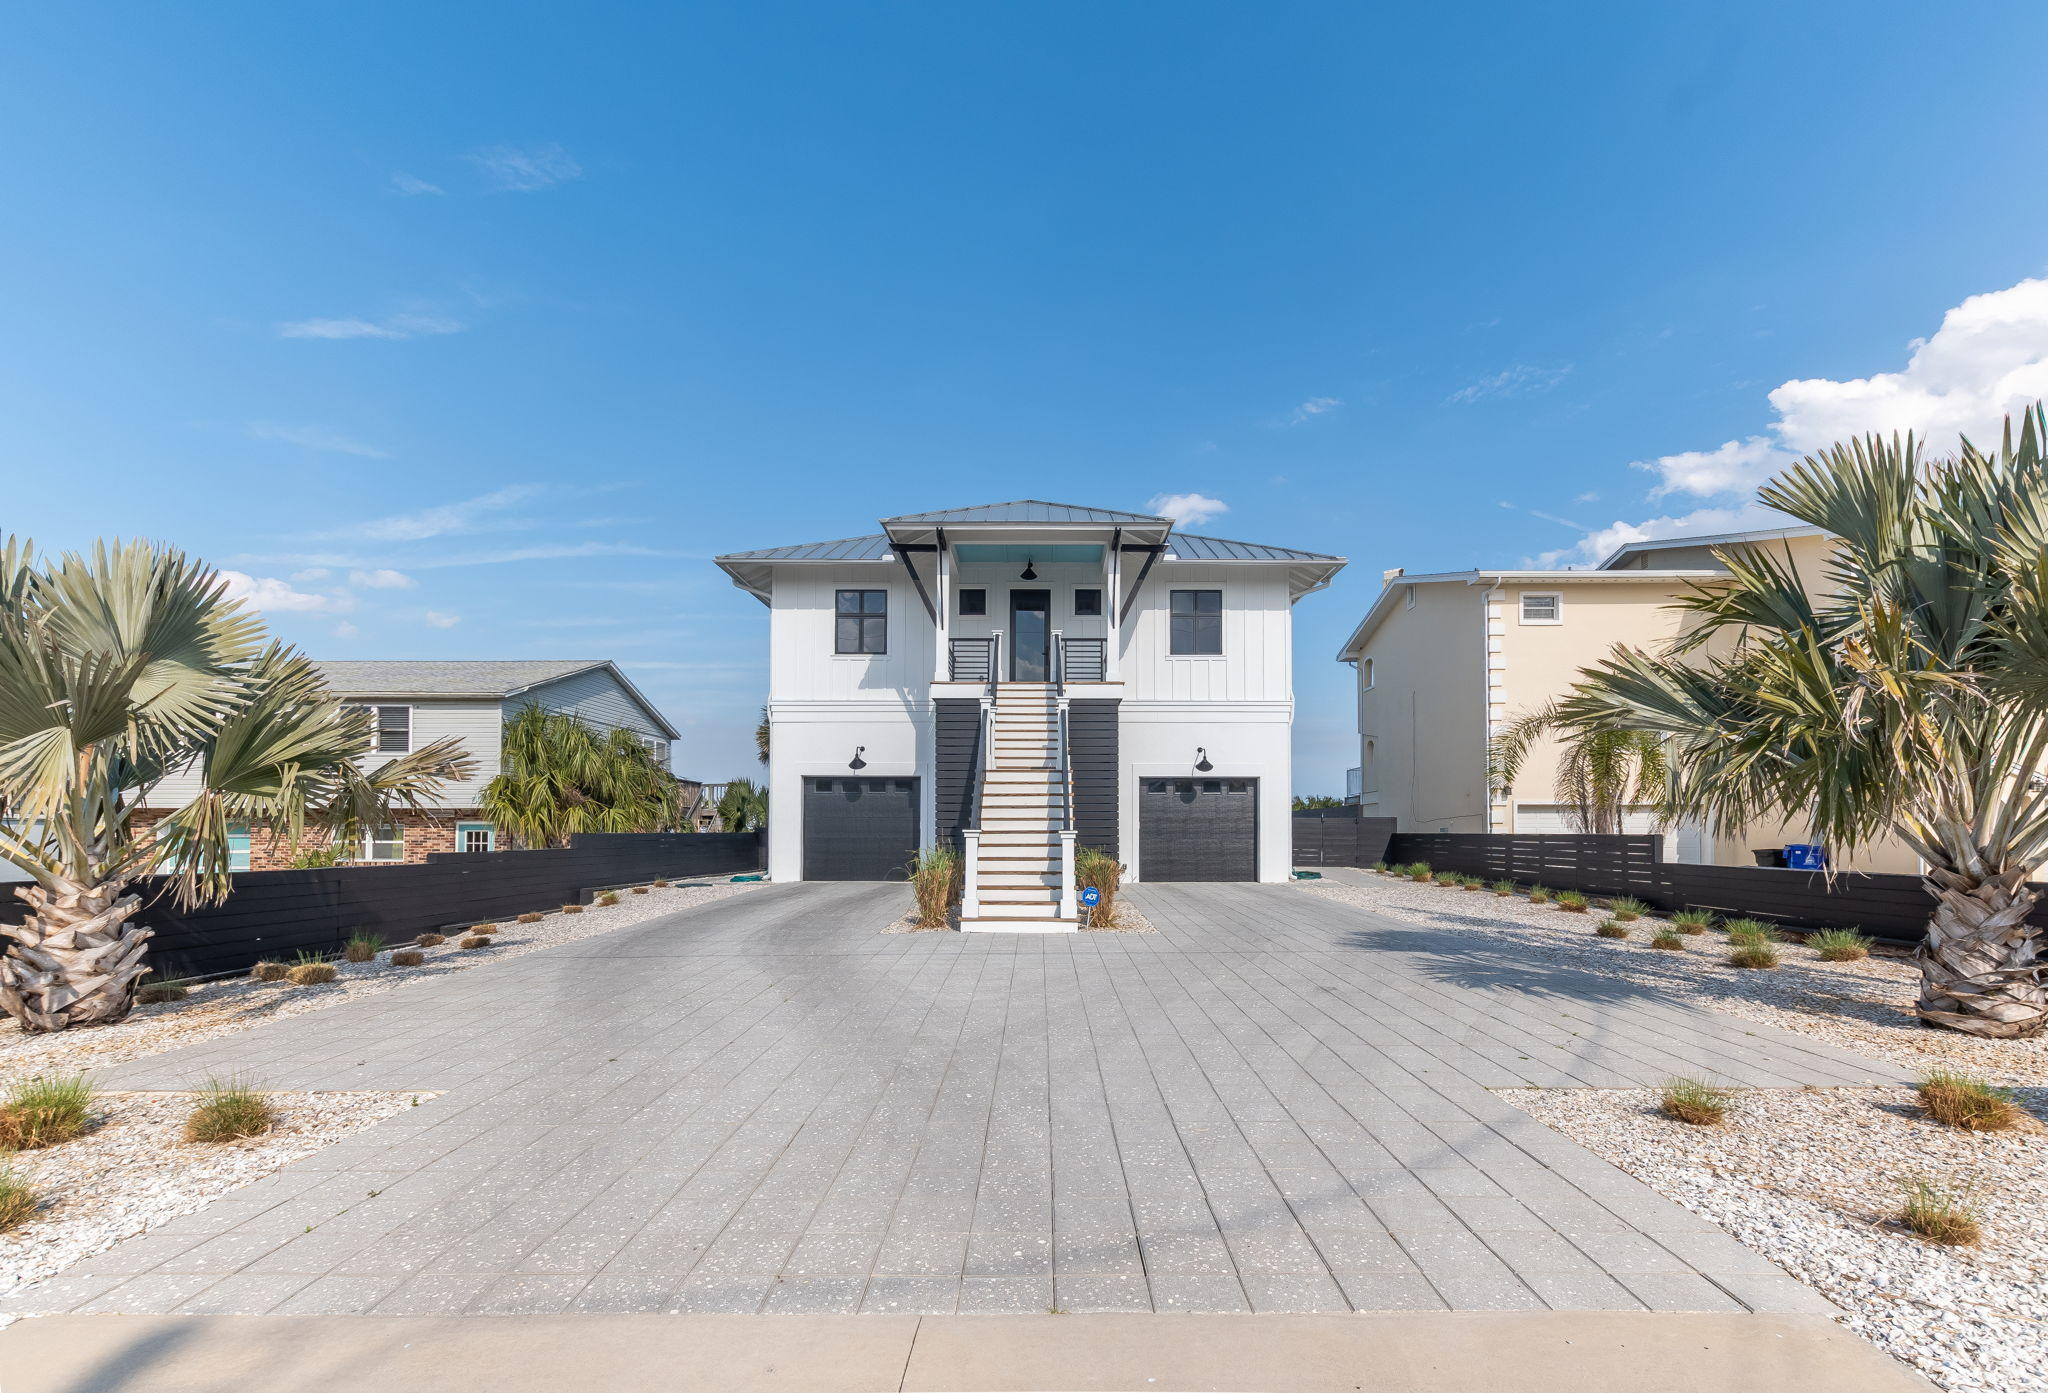 A celebration of the ocean, light, and air, this extraordinary property is bold in modernity and uncompromised in luxury. This masterpiece was built in 2019 with magnificent ocean views, architectural brilliance, and the highest levels of design and artistic craftsmanship. Located just minutes from downtown St. Augustine, this home is complete with a deck spanning the entire 2nd floor and oversized sliding doors. A sun filled and state of the art entertainer's dream kitchen with Wolf range, Subzero refrigerator, wine fridge, Caesar stone counters, and expansive quartz waterfall island with bar seating opens into the living room with high ceilings. Wake up in the master suite overlooking the deck and exquisite direct ocean views.